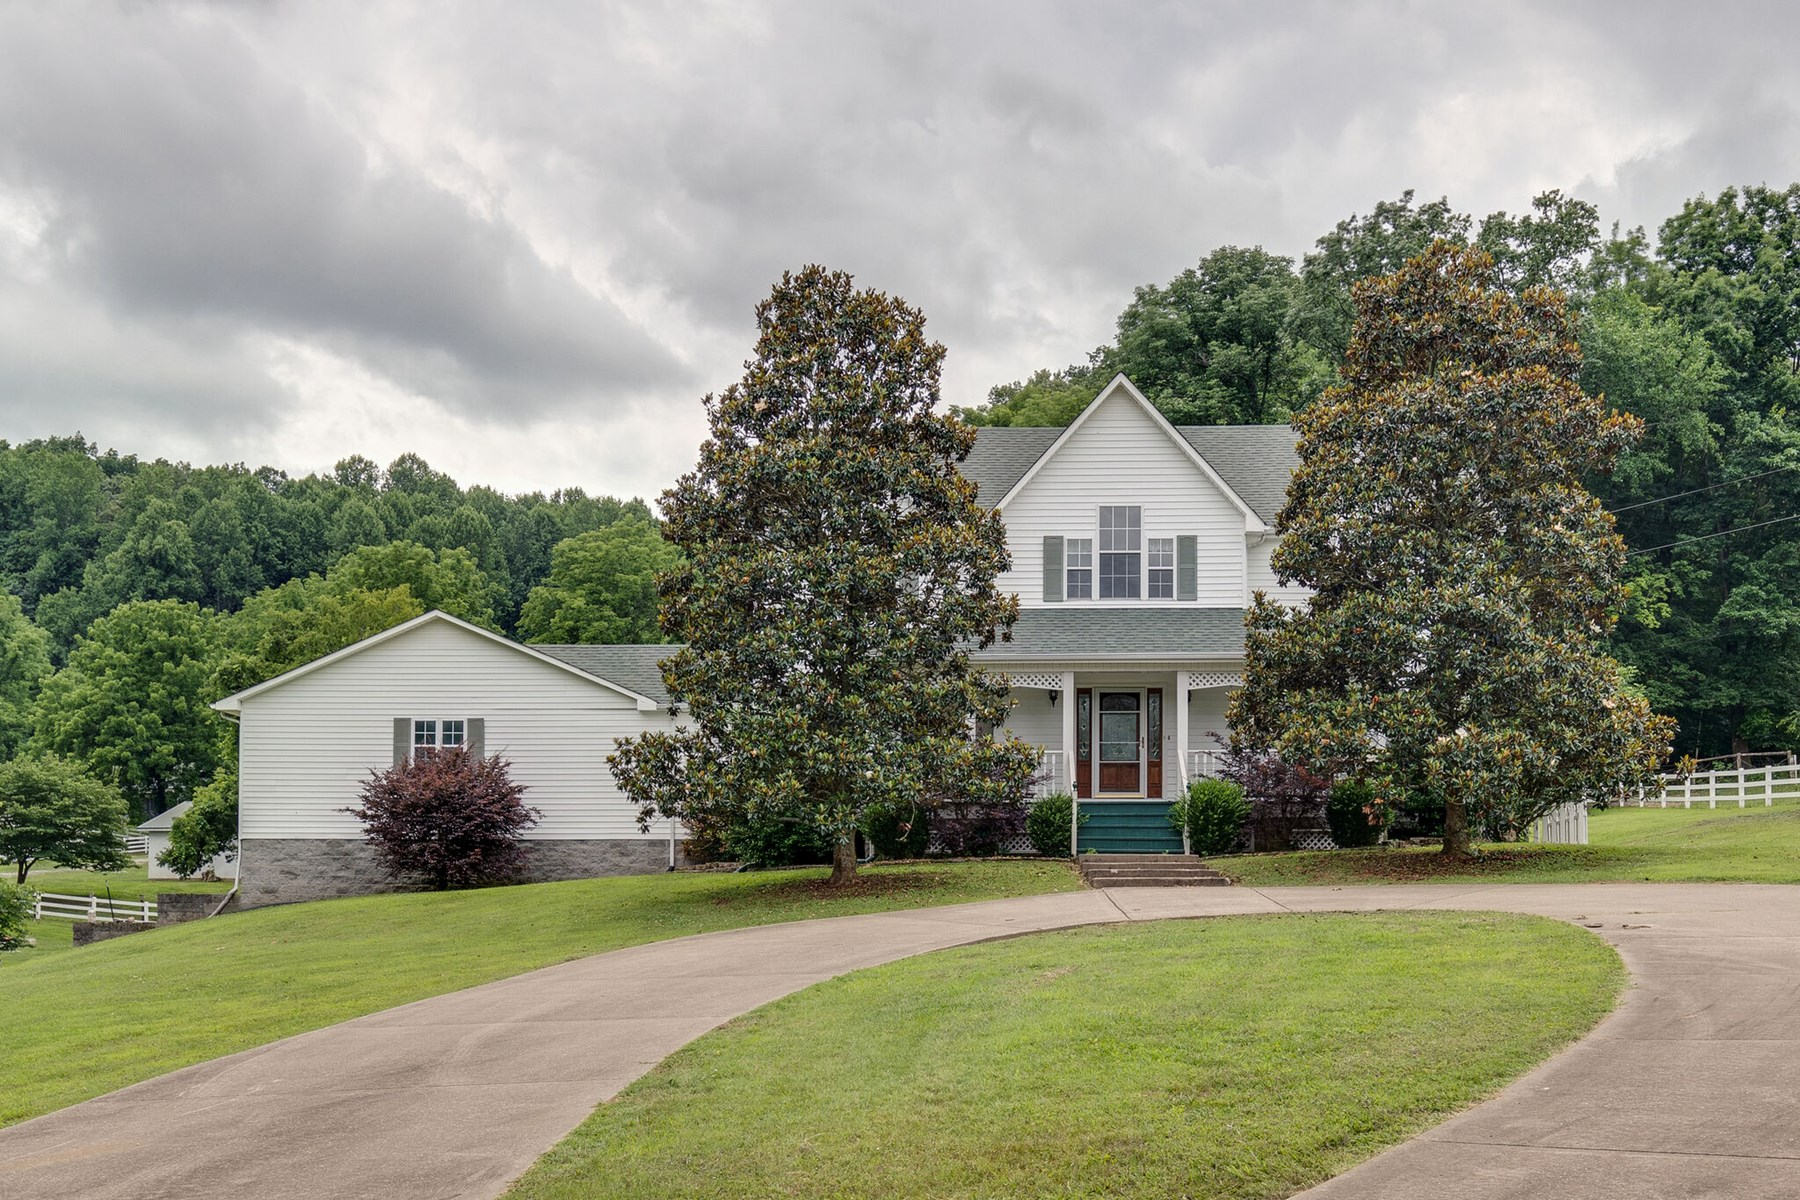 Equestrian Estate for Sale in Lewisburg, Marshall County, TN